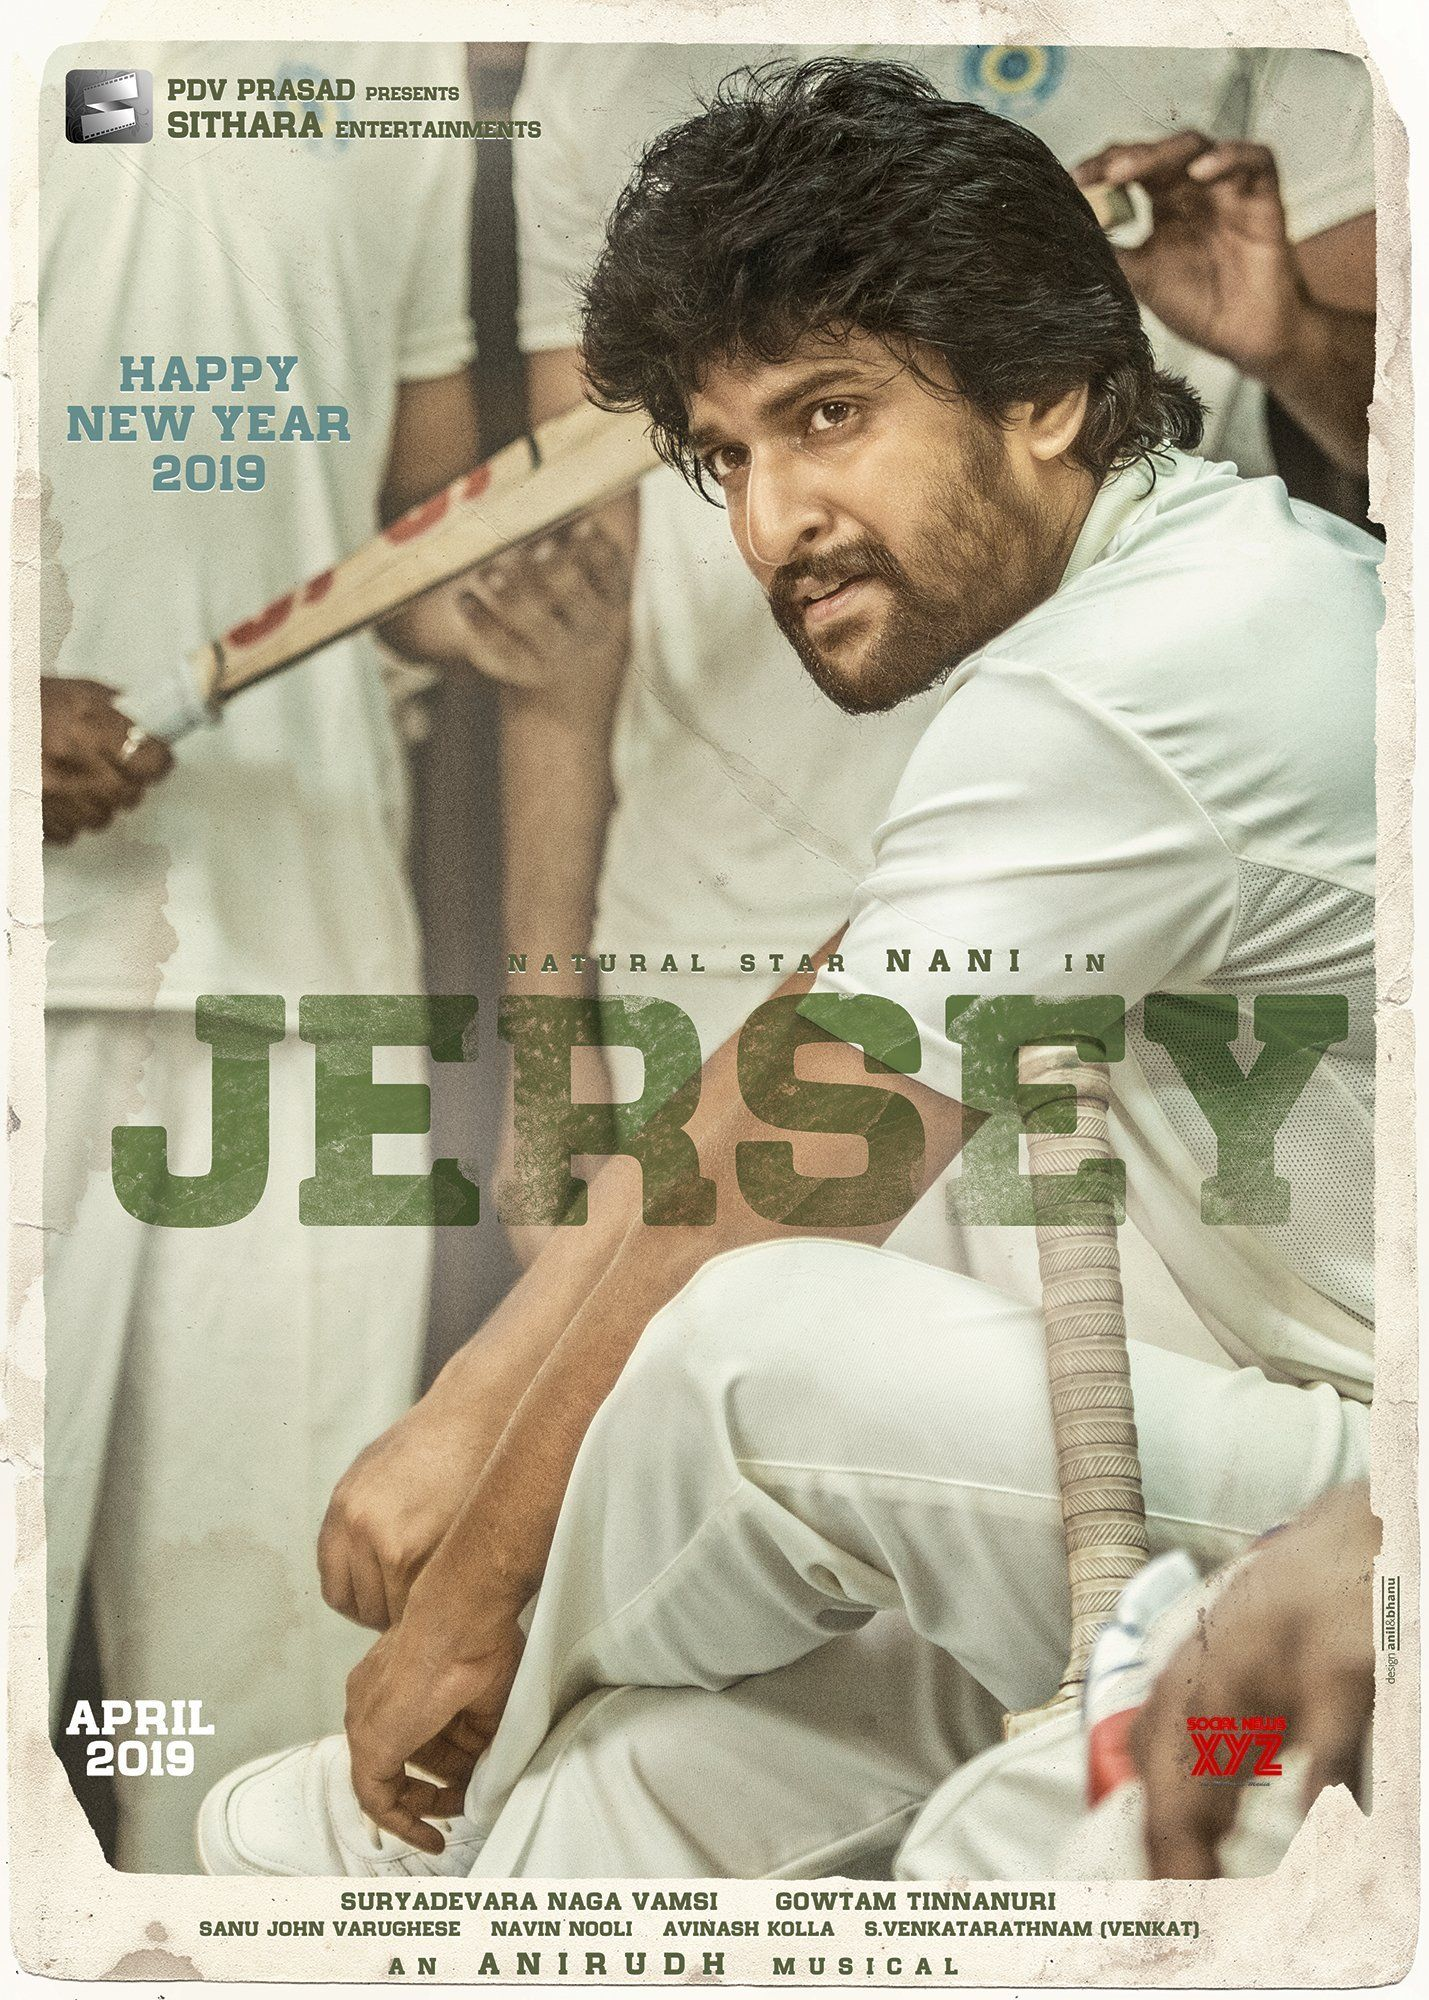 Nani S Jersey First Look Hd Poster And Still Social News Xyz Telugu Movies Online Telugu Movies Download Download Movies